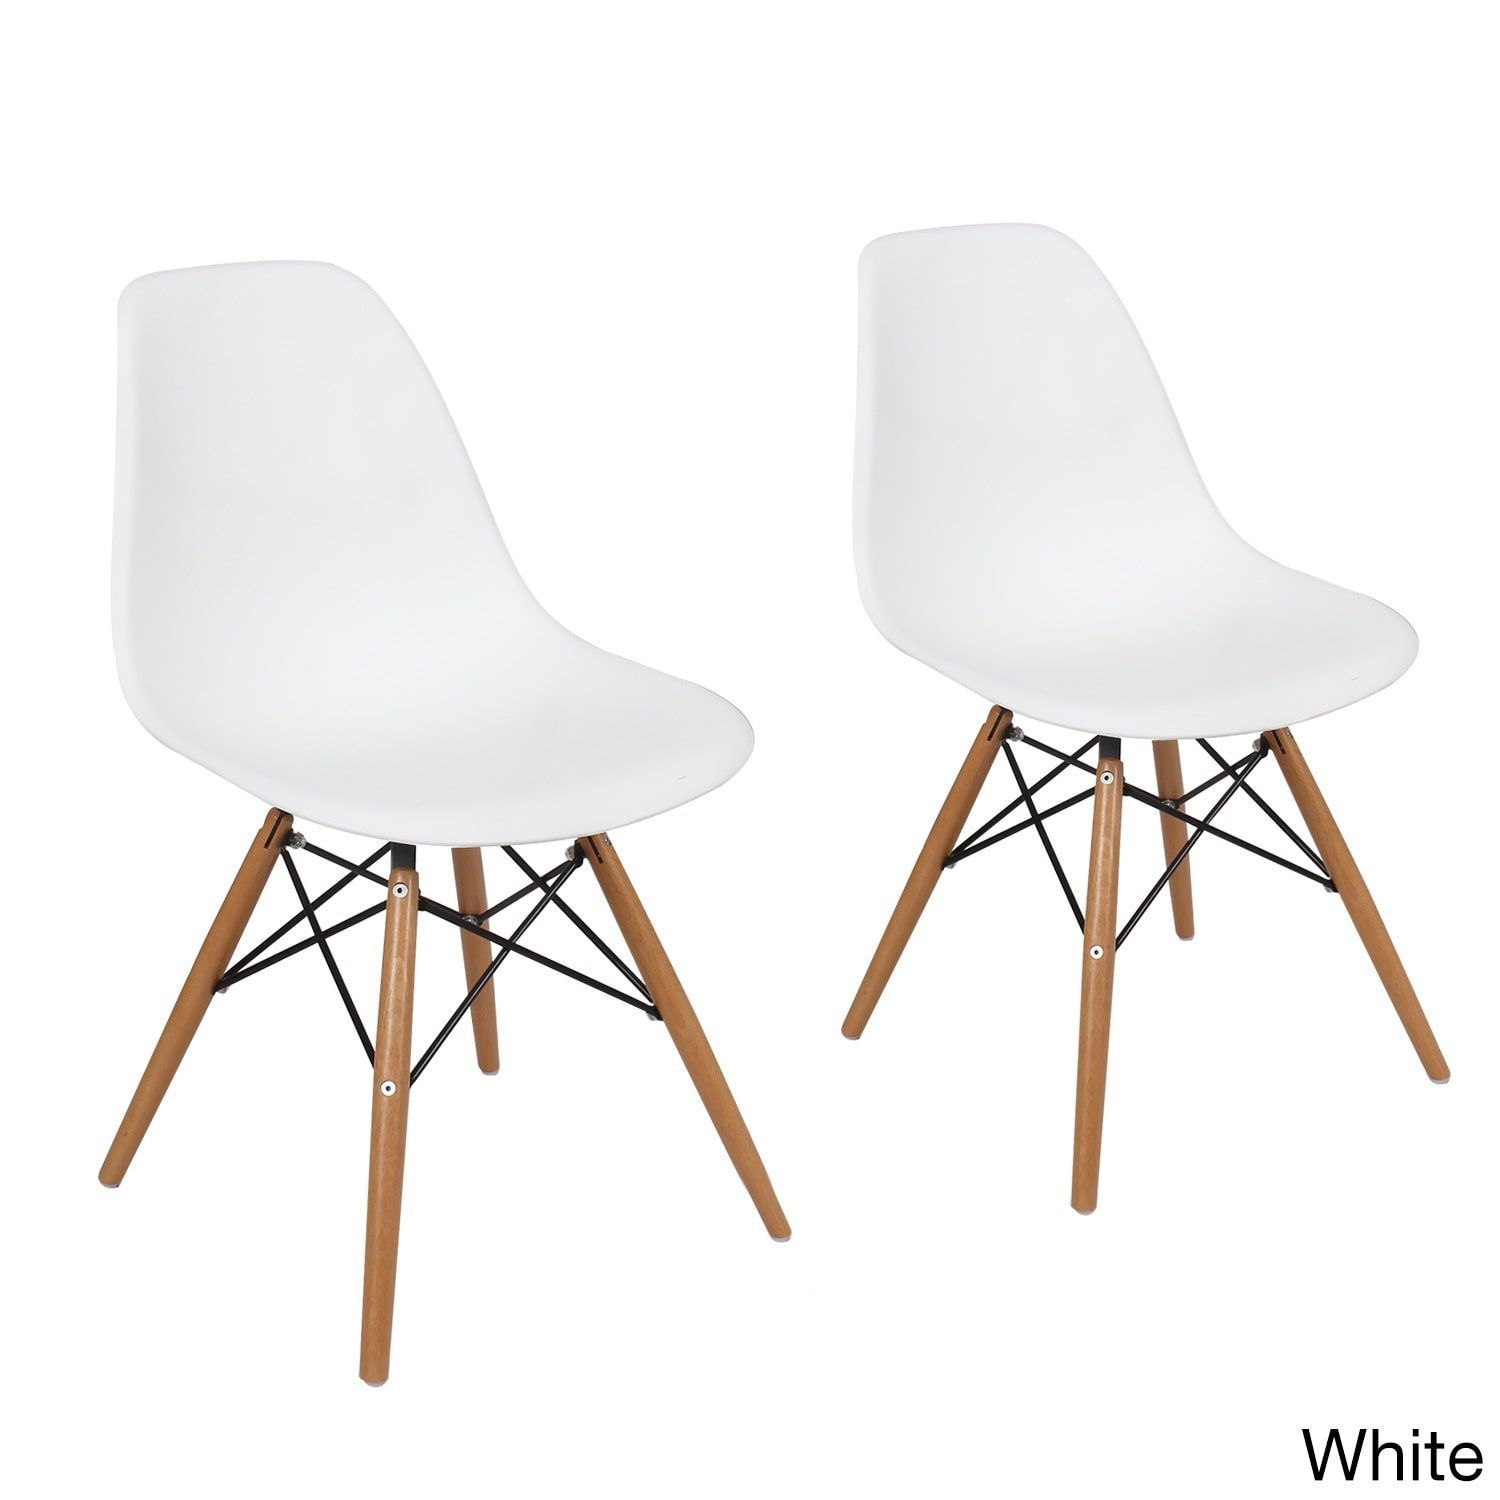 Adeco Plastic Dining Chair with Wooden Legs (Set of 2) (